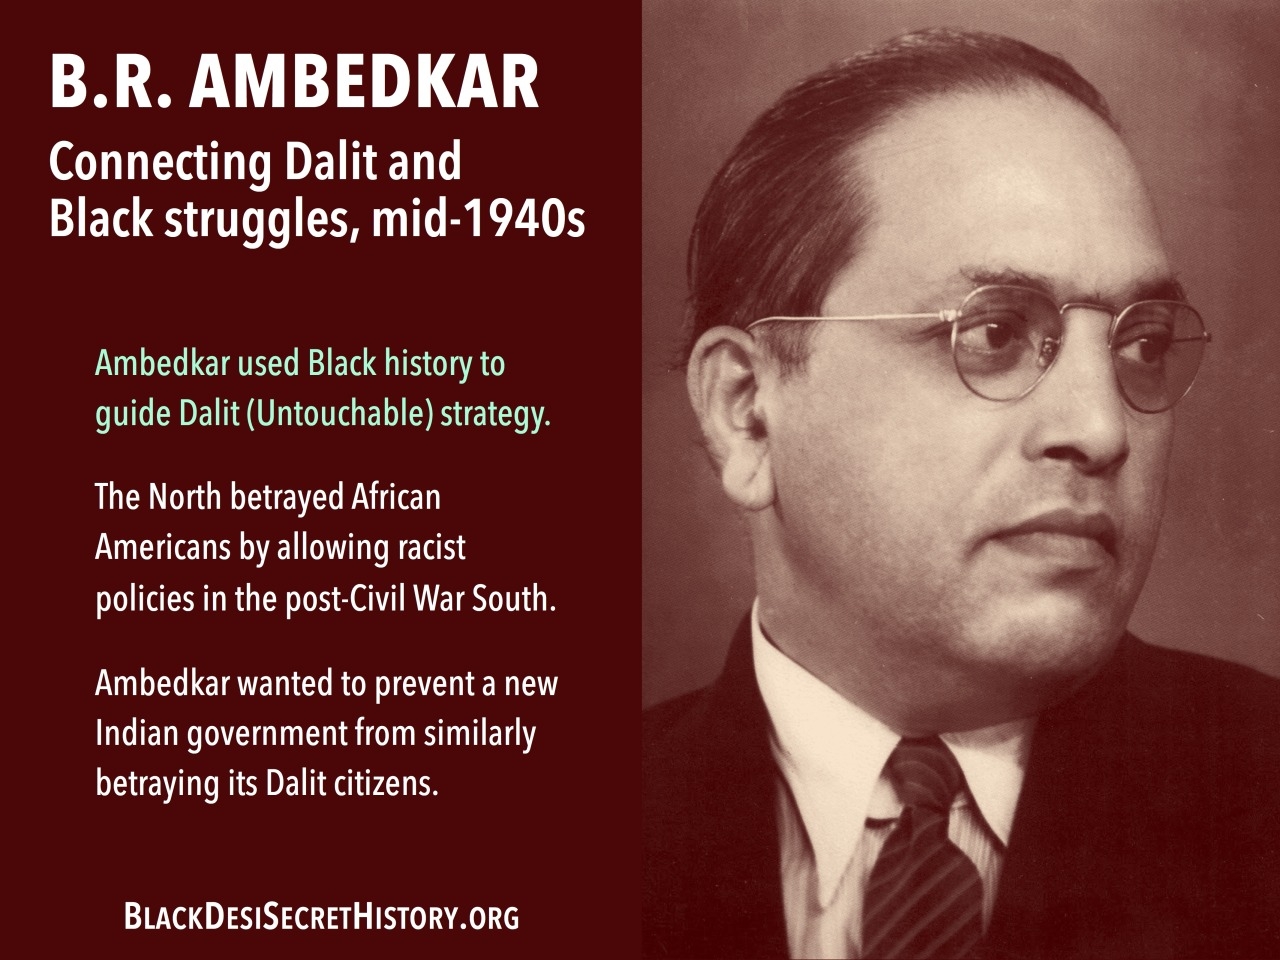 B.R. AMBEDKAR,